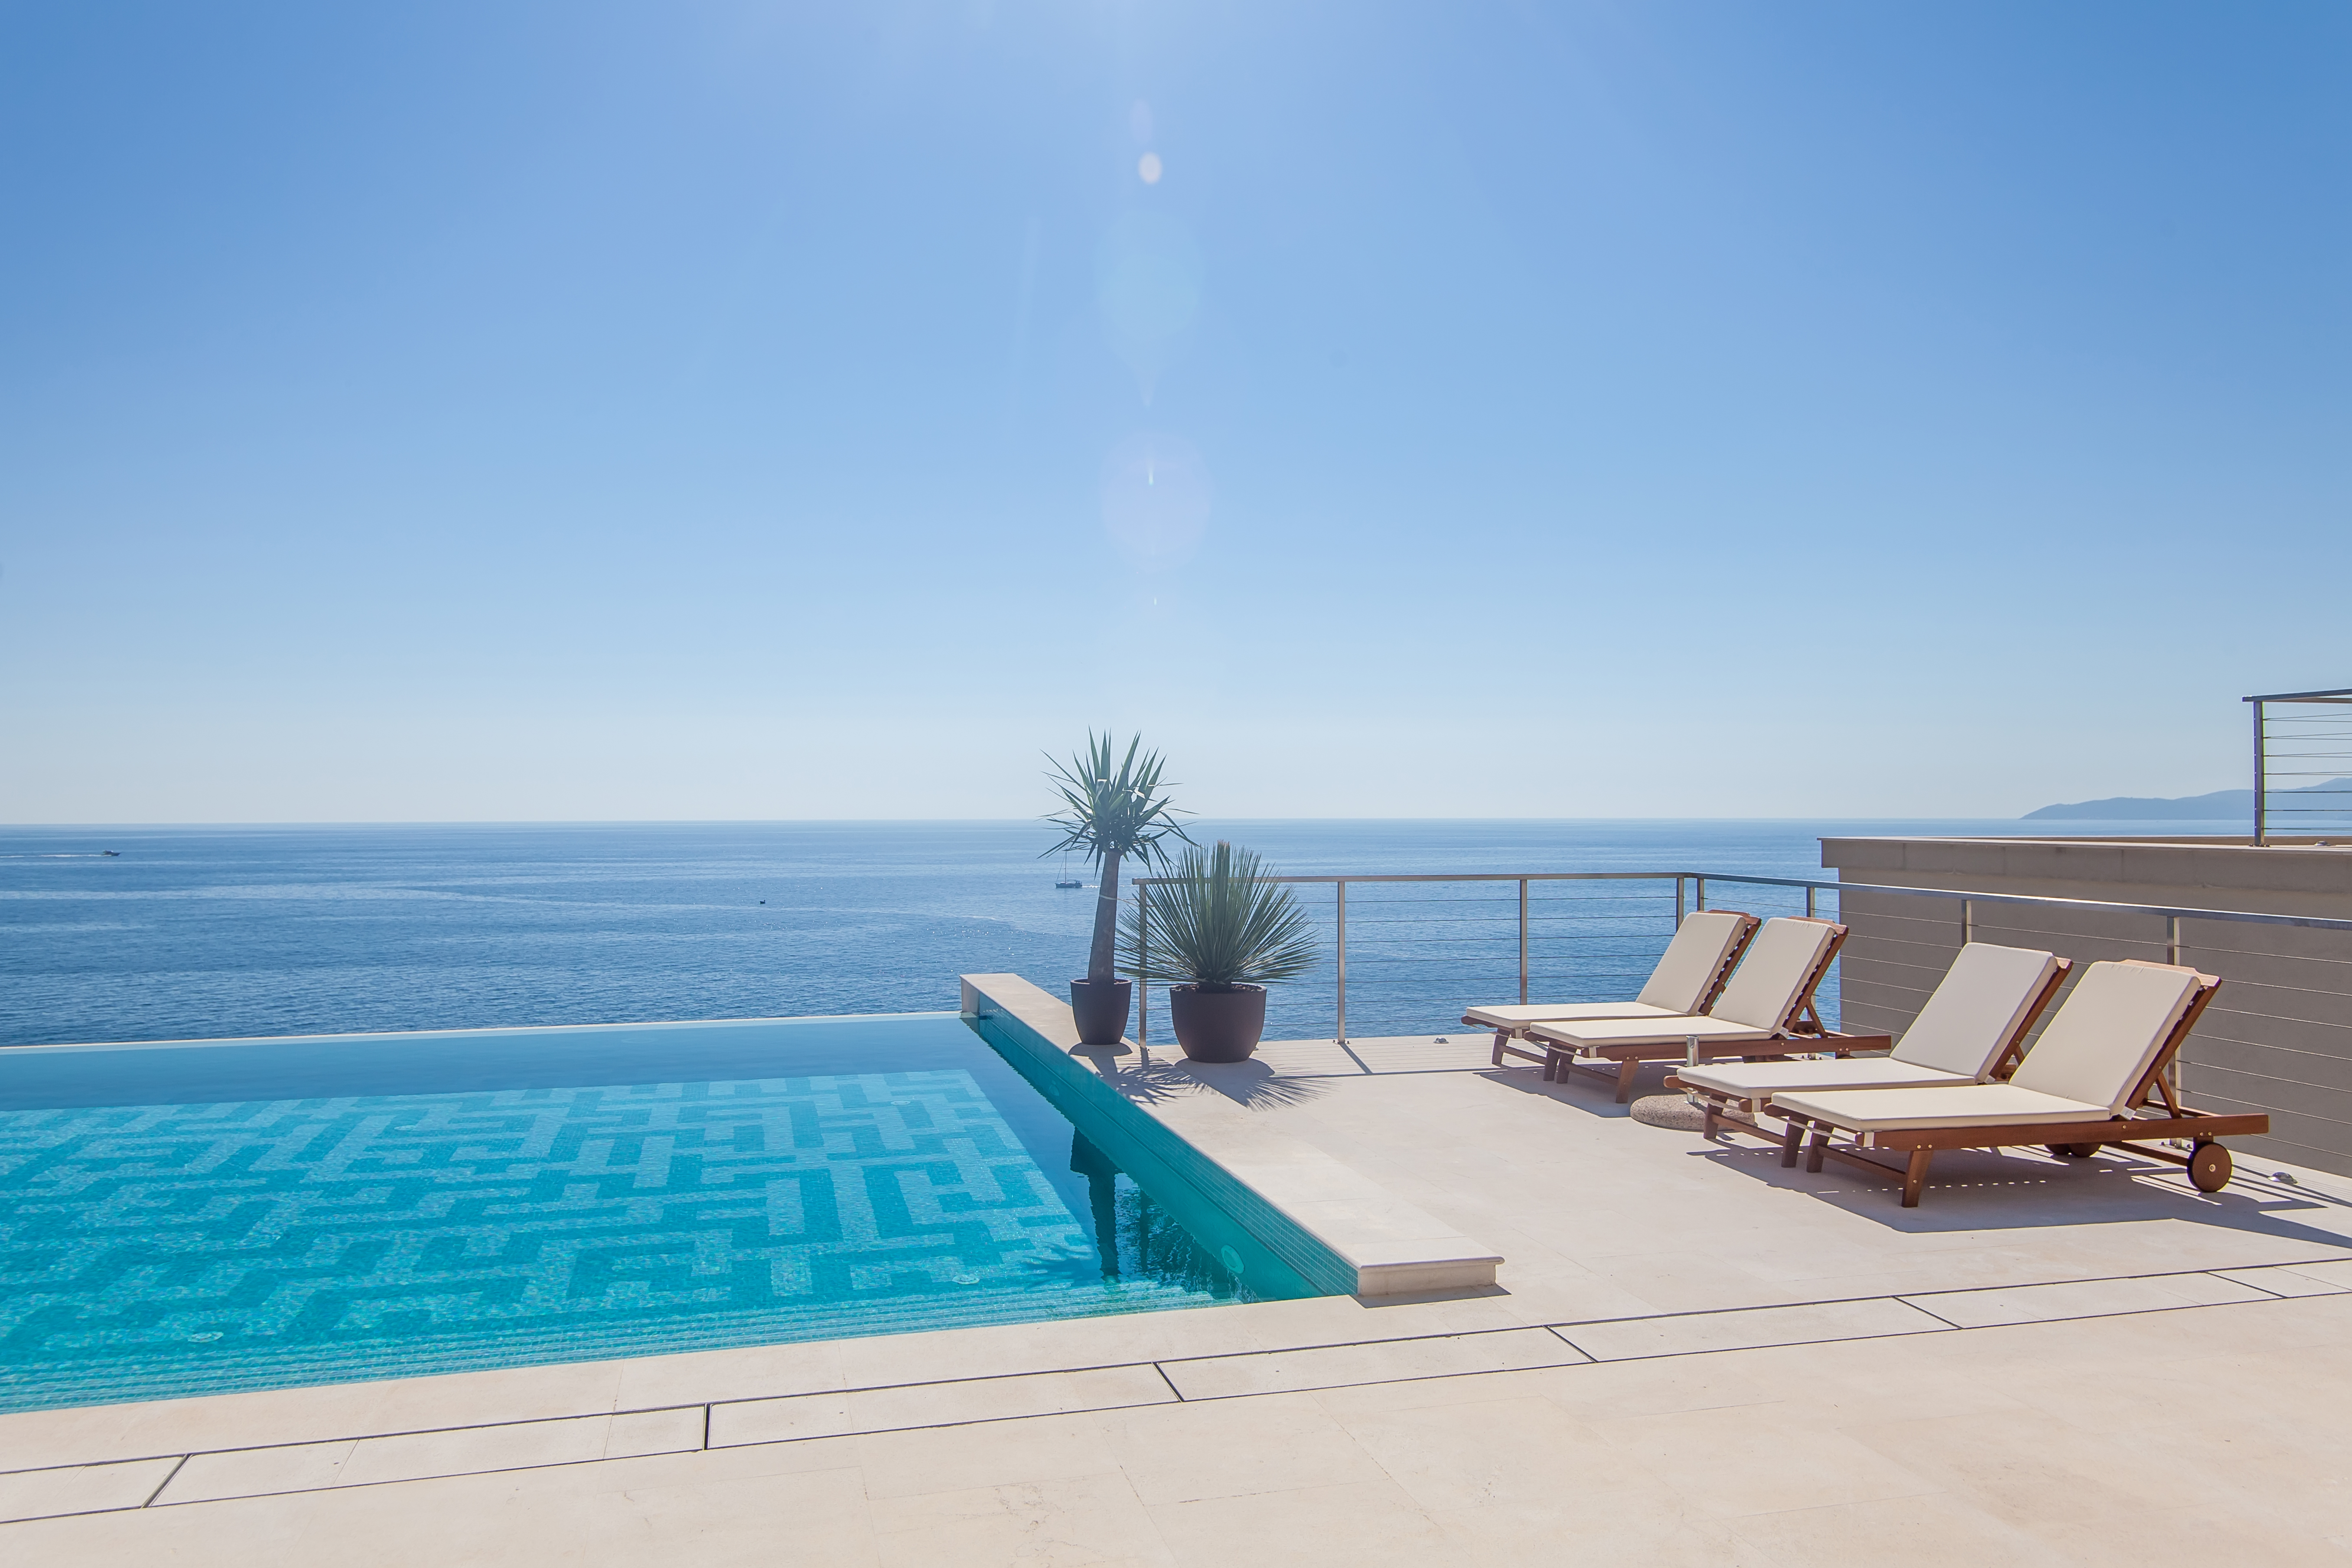 Luxury swimming pool and blue water at t